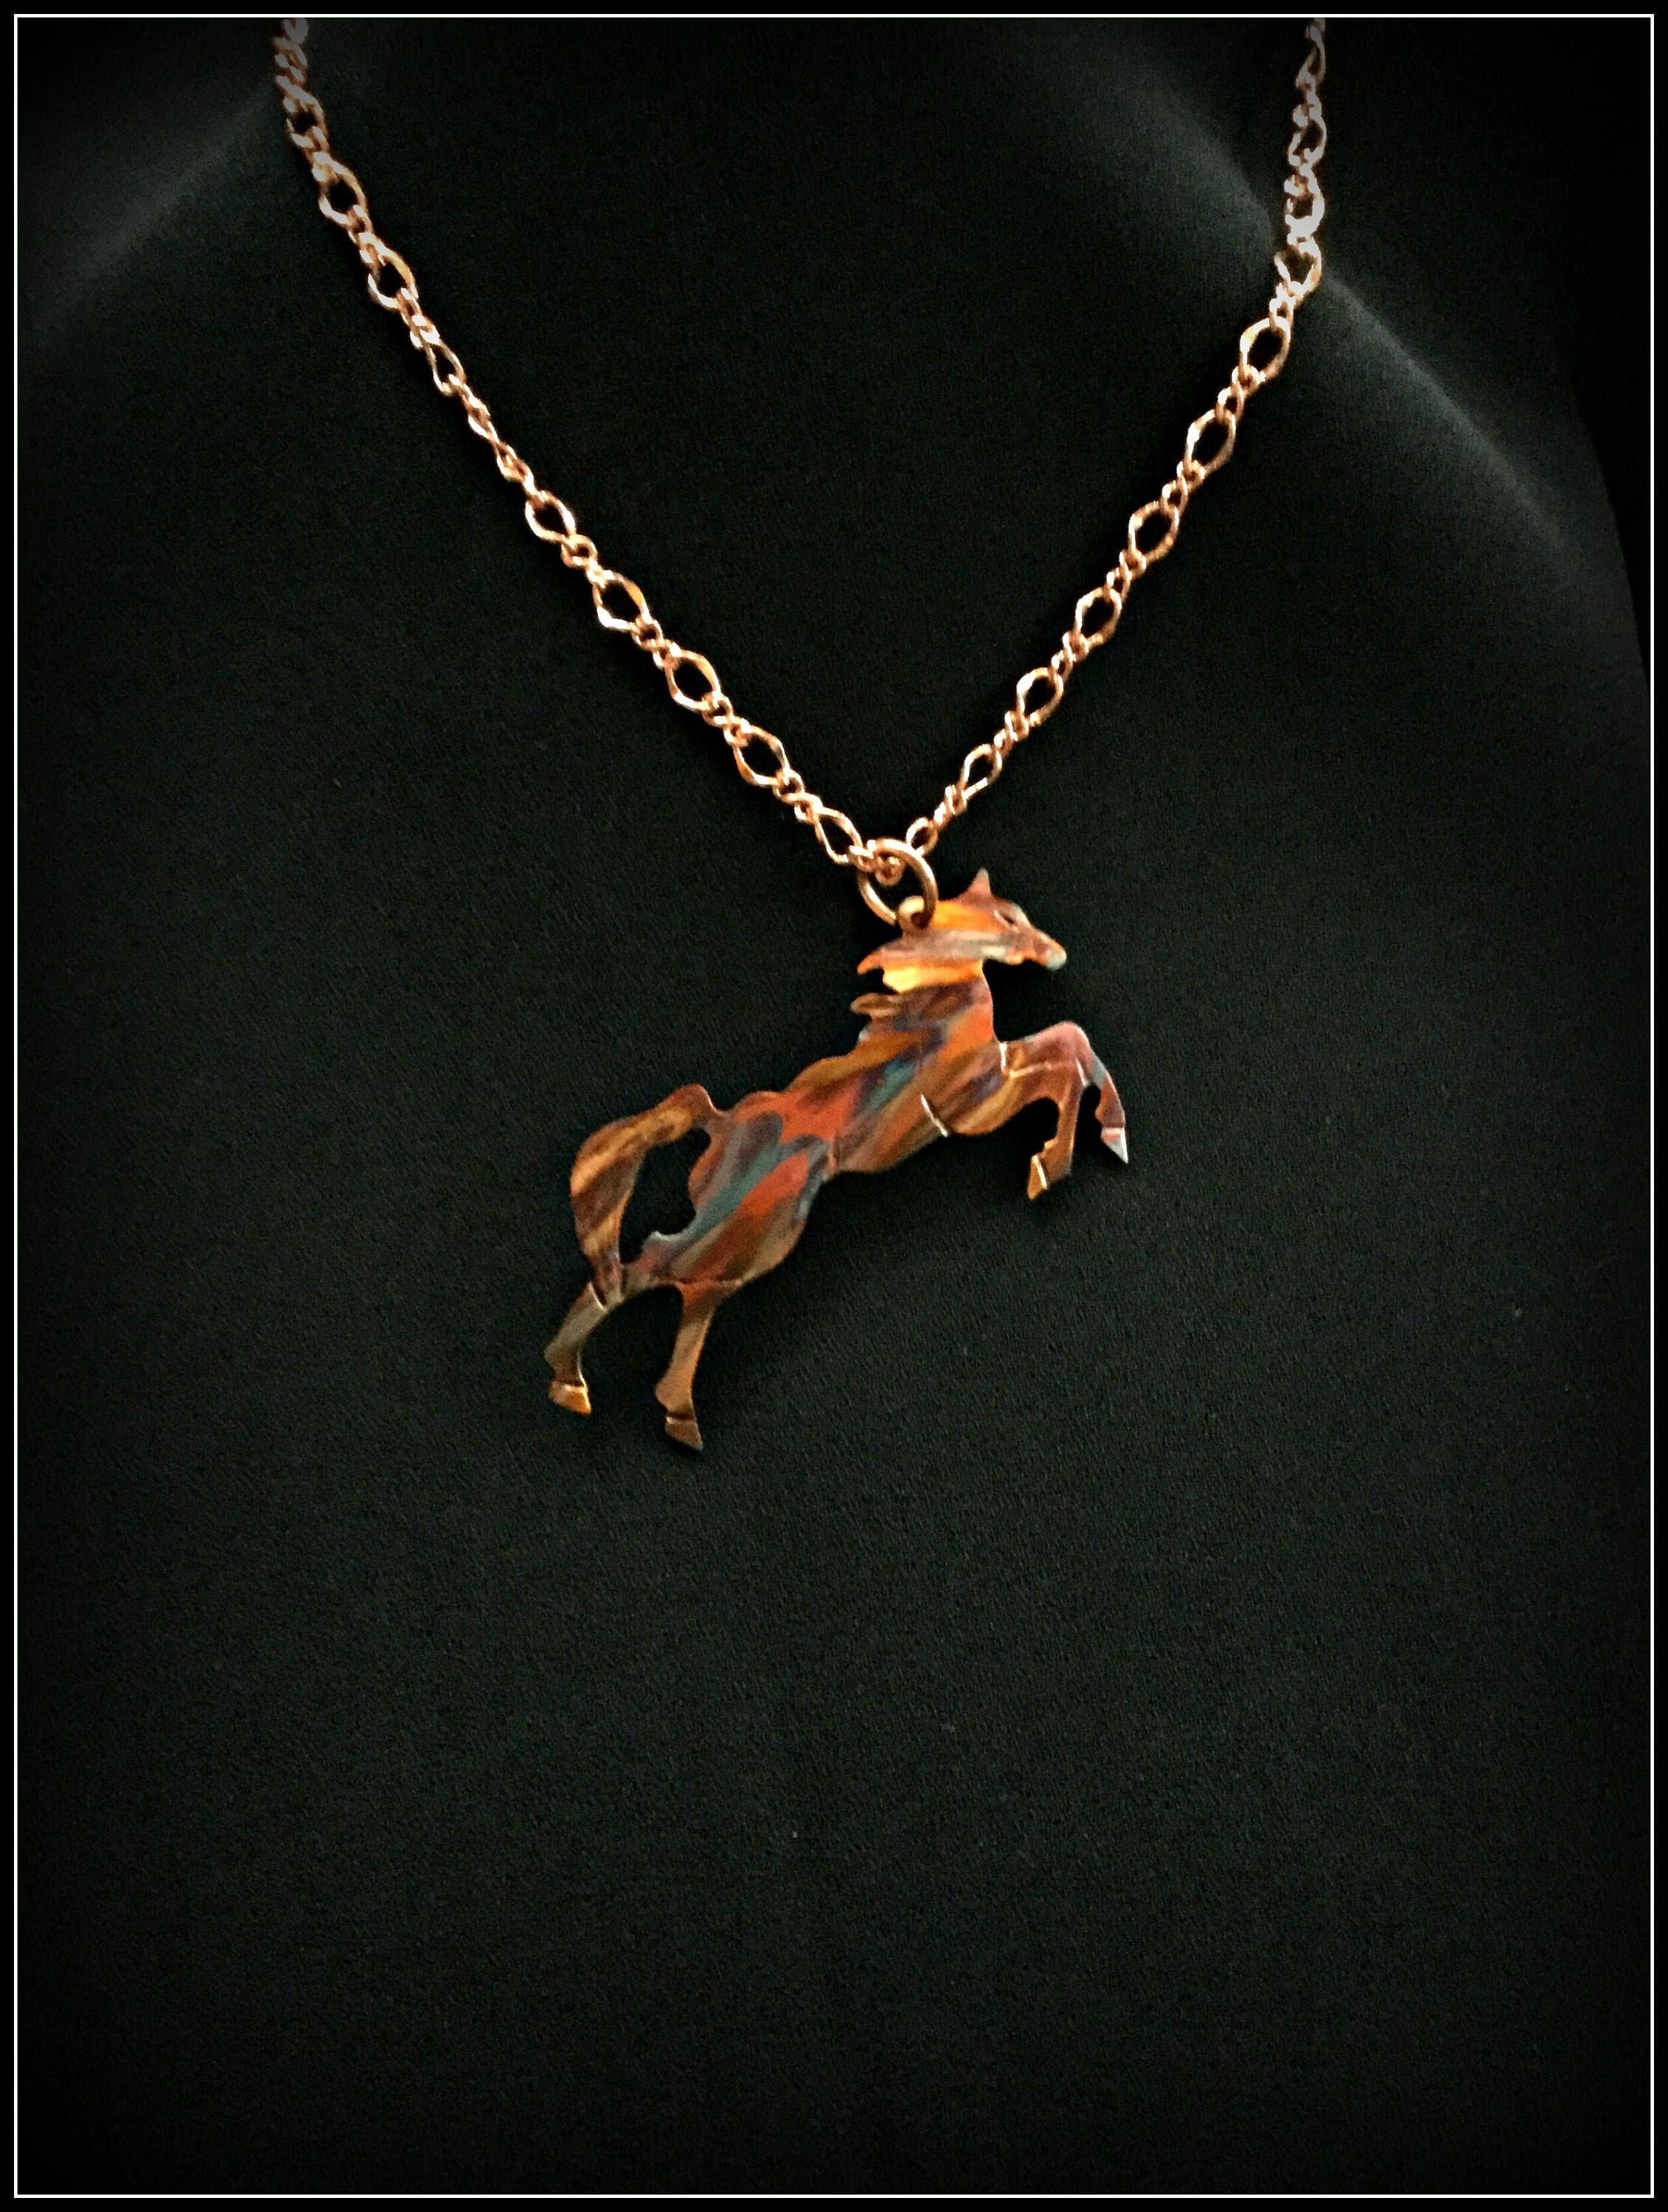 nahorse vintage to necklace expand full item shadowbox foal click native horse silver sterling american